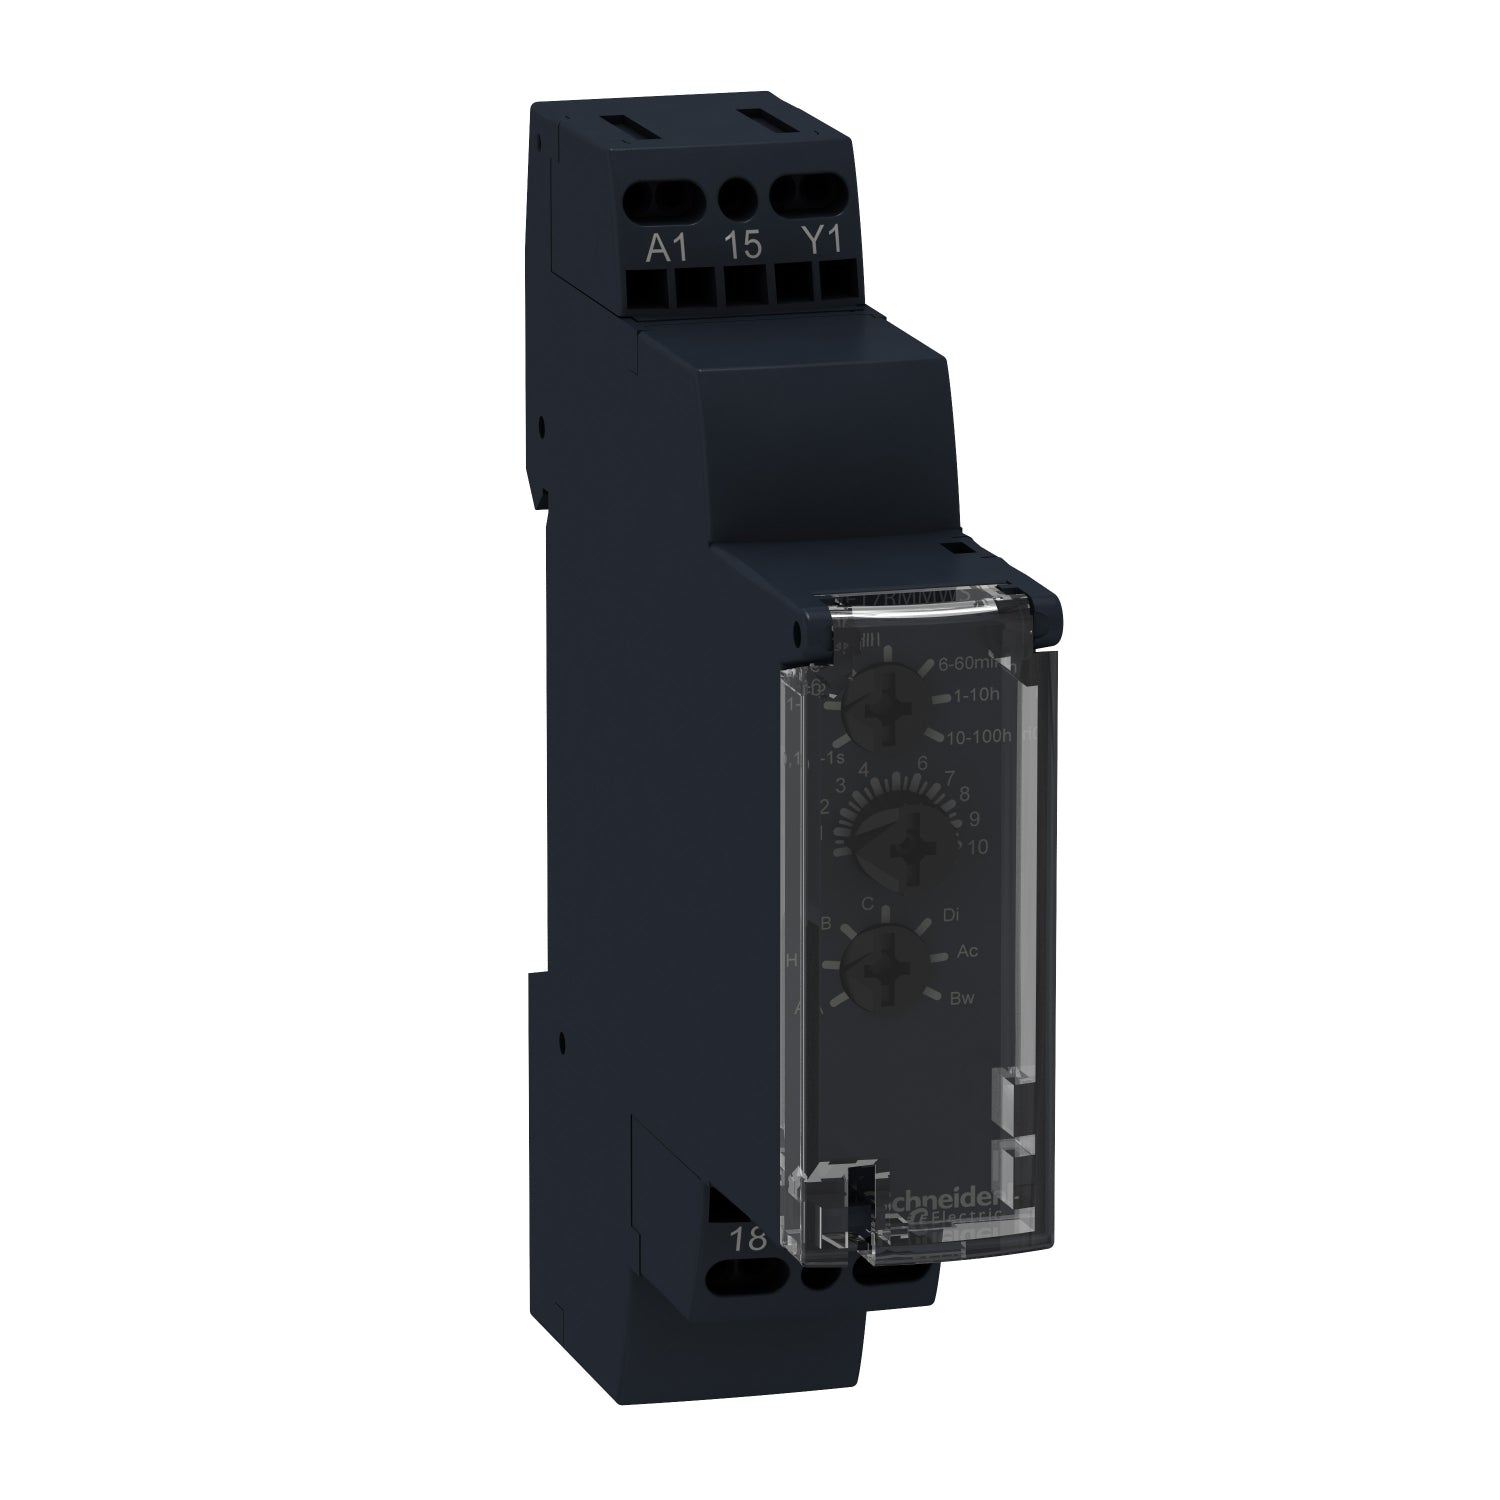 Schneider Electric Schneider RE17RMMW Multi Function Timer Relay, Screw, 0.1 s → 100 h, SPDT, 2 Contacts, SPDT, 12 → 240 V ac/dc - BNR Industrial